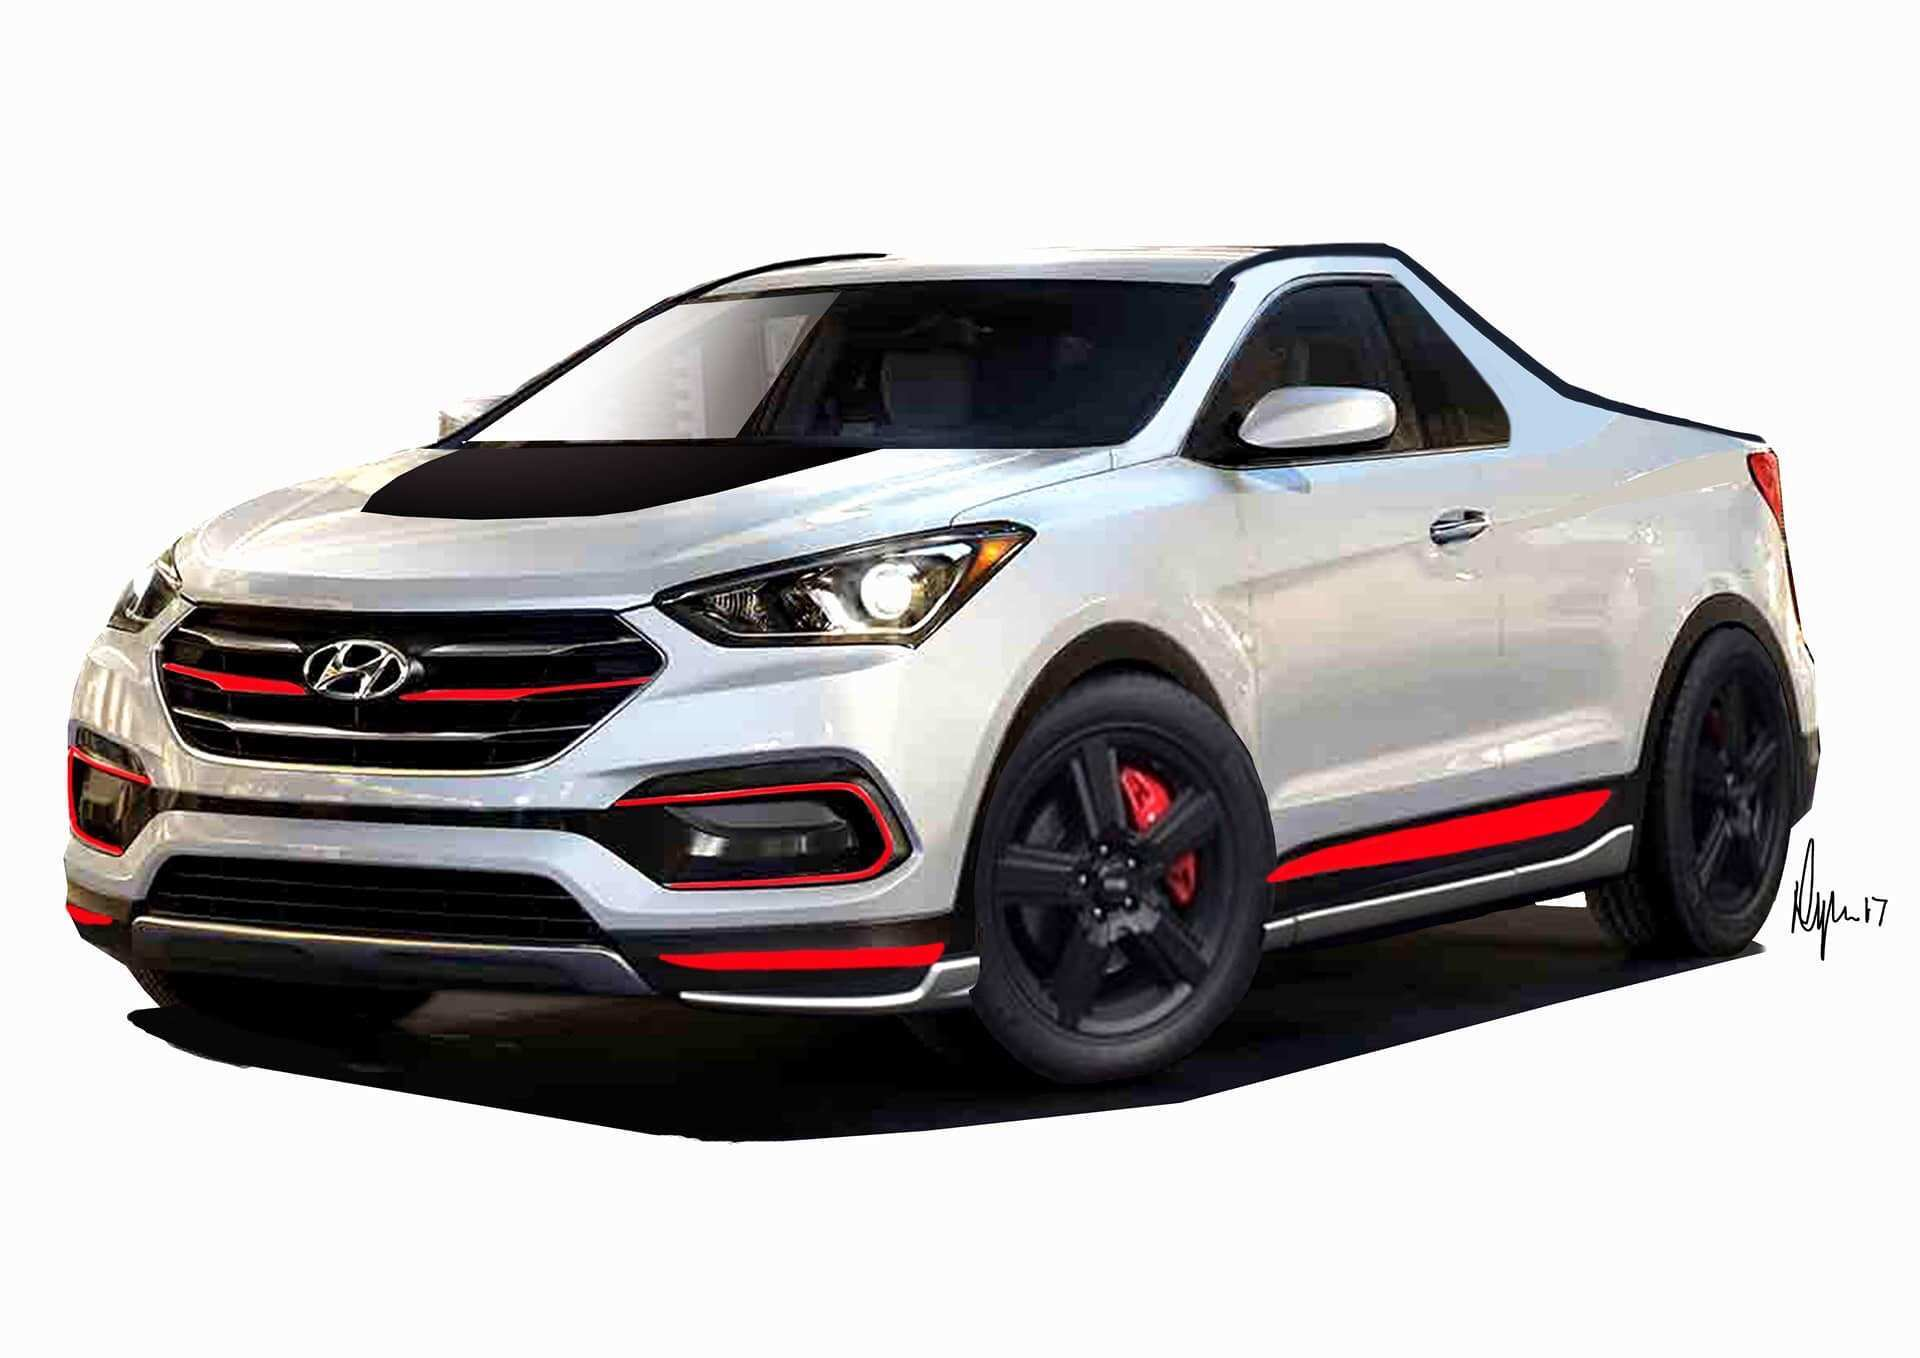 53 All New Hyundai Ute 2020 First Drive